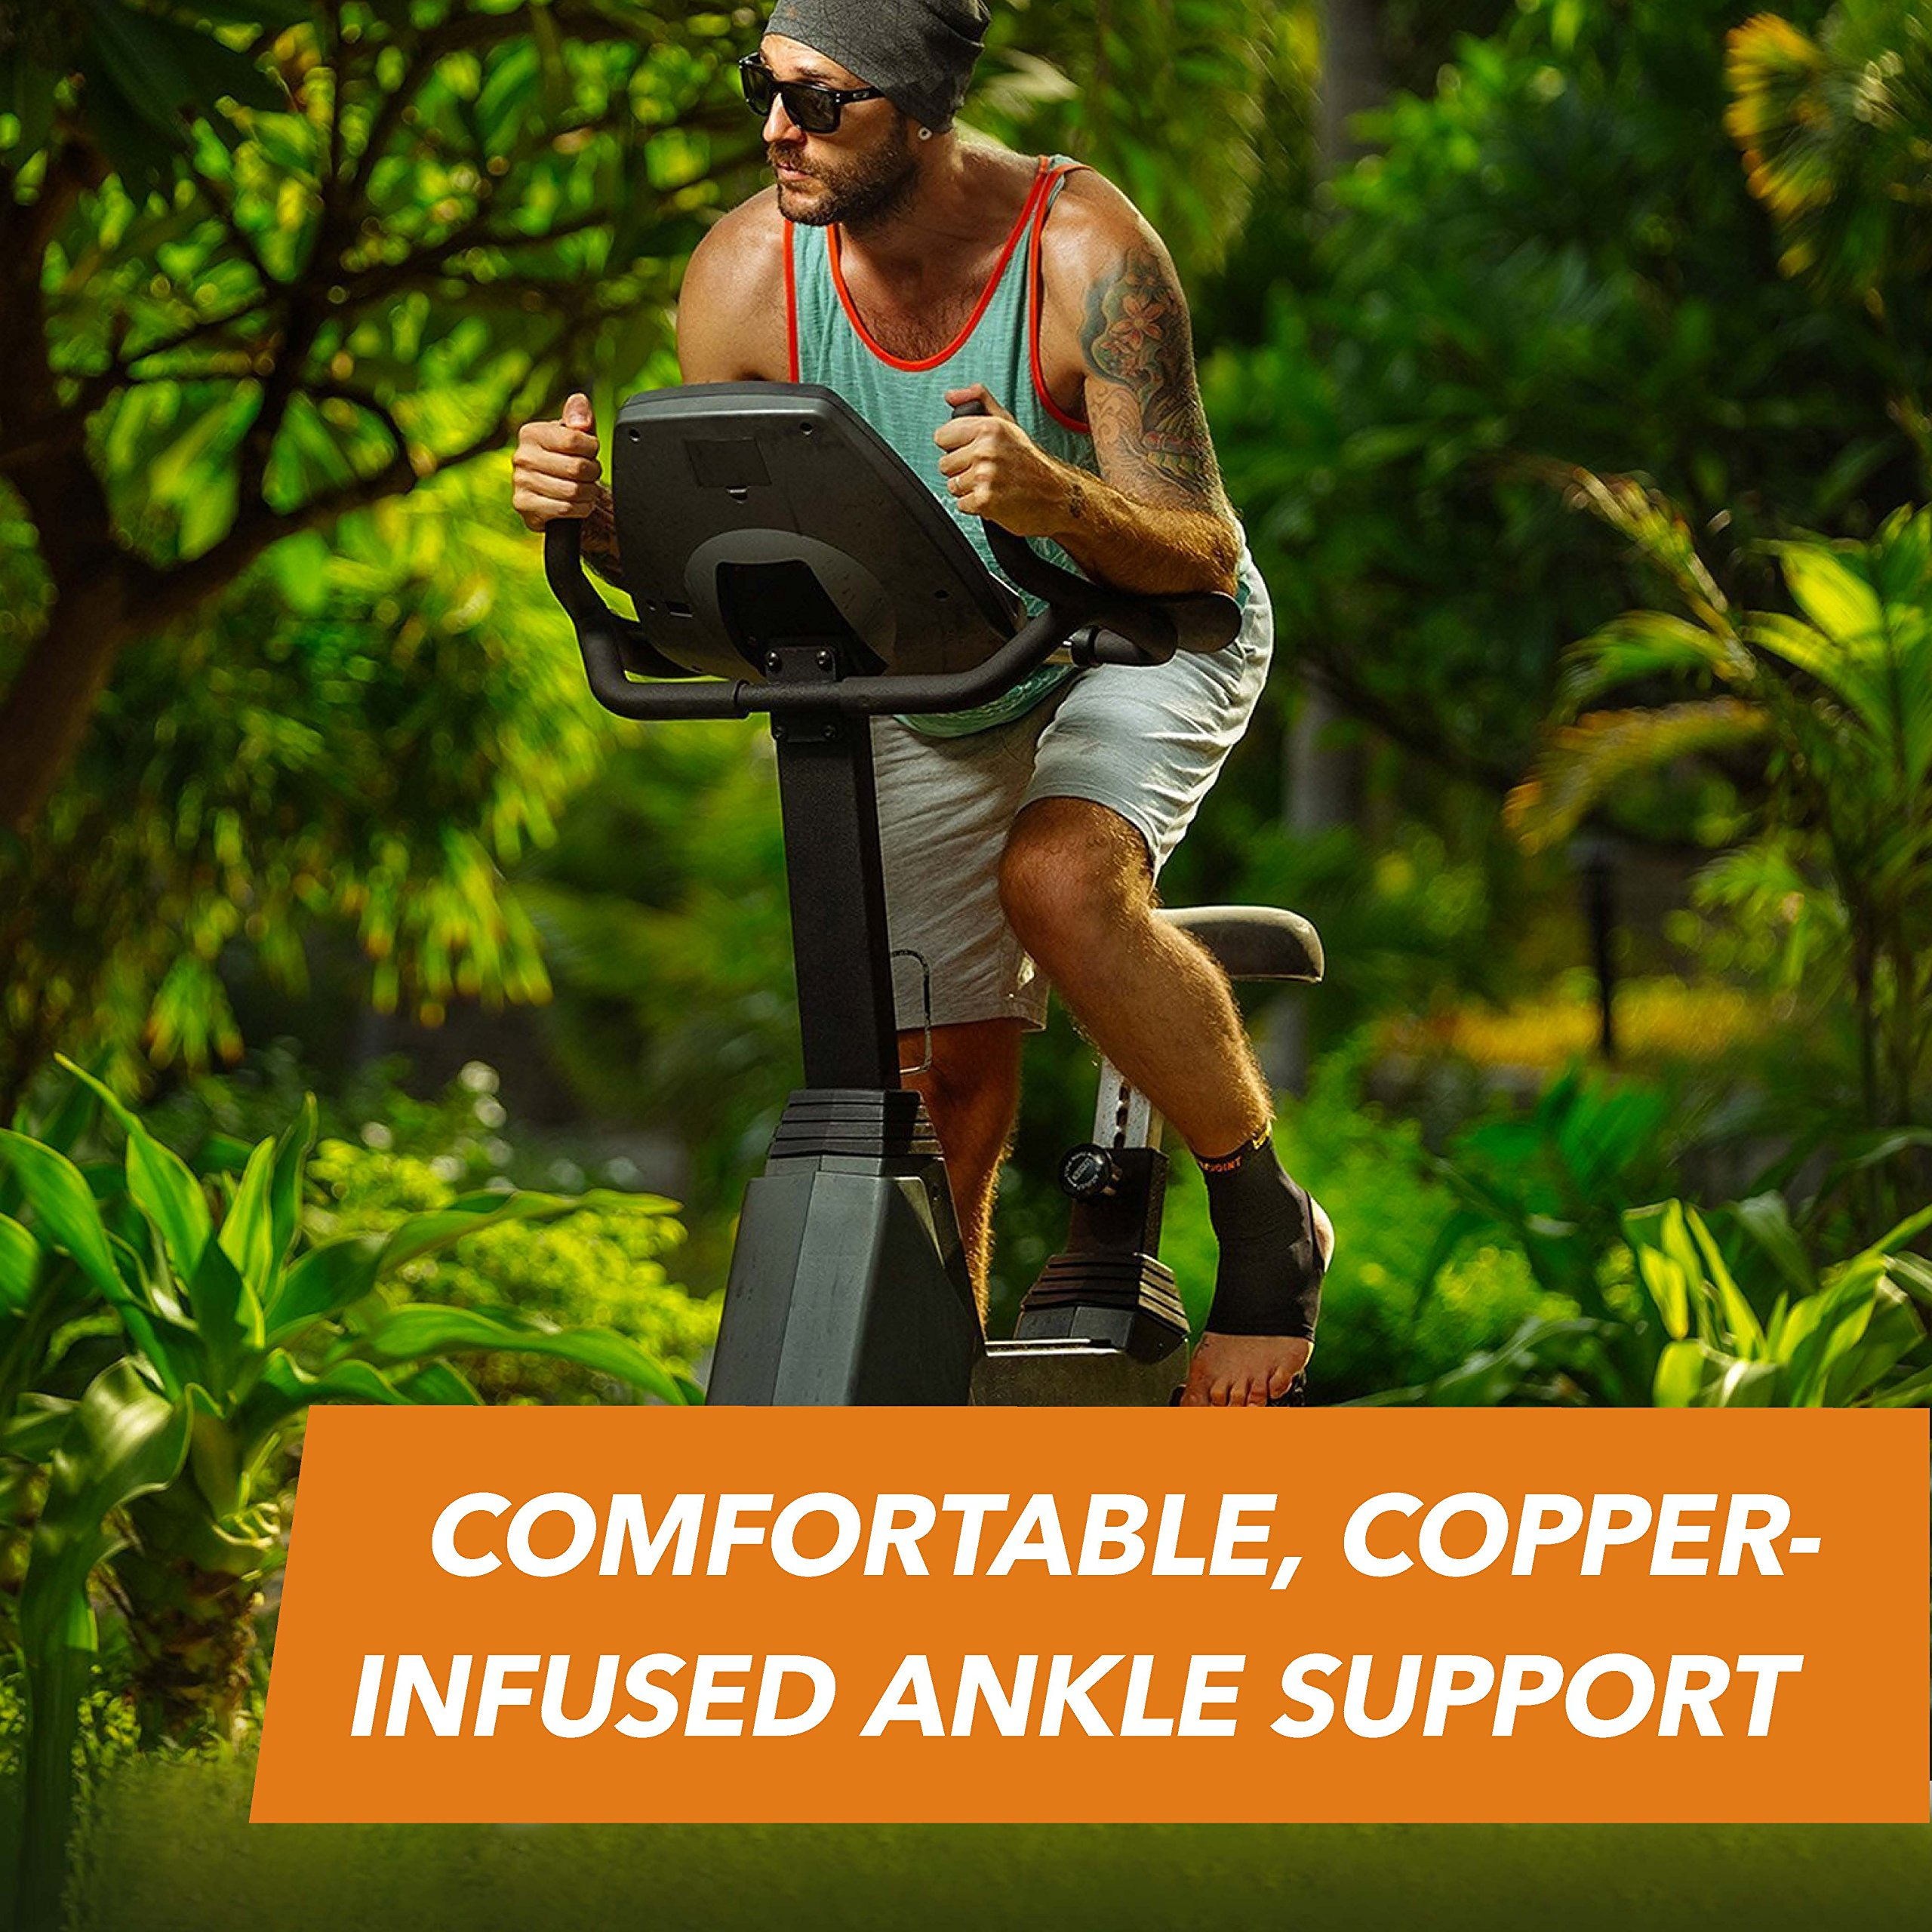 CopperJoint Copper-Infused Compression Ankle Sleeve, High-Performance, Breathable Design Provides Comfortable and Durable Joint Support for All Lifestyles, Single Sleeve (Medium) by CopperJoint (Image #10)